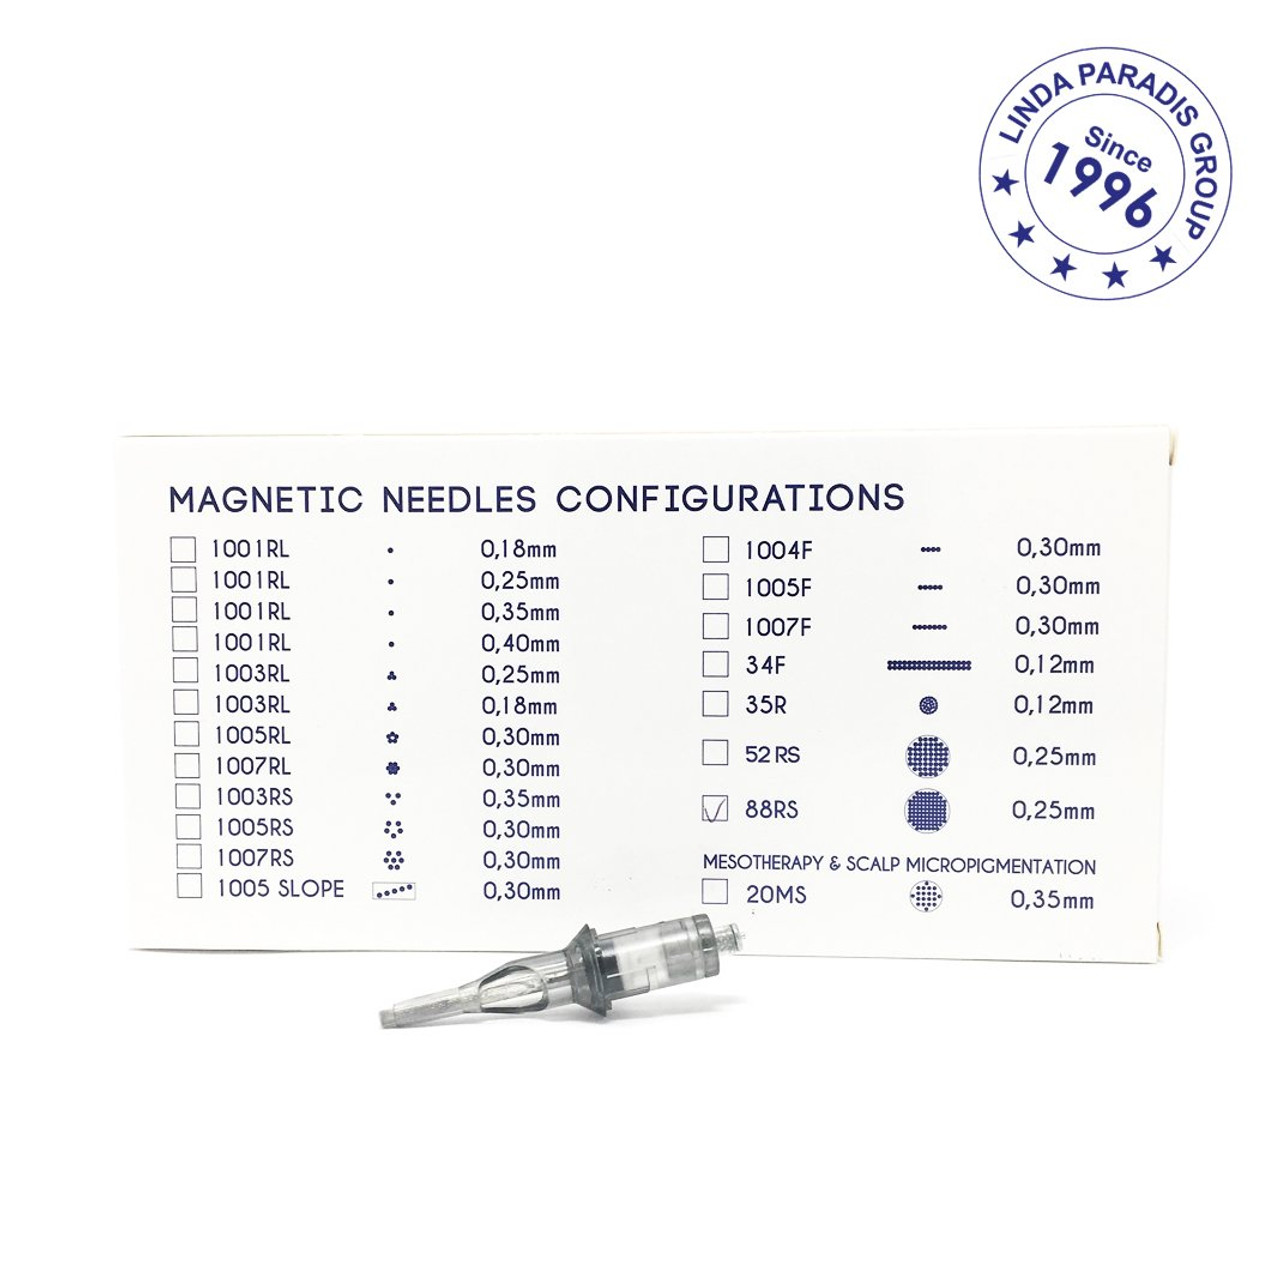 Cartridge Needle 88RS - Tattoo Remoov (Box of 10 Units)